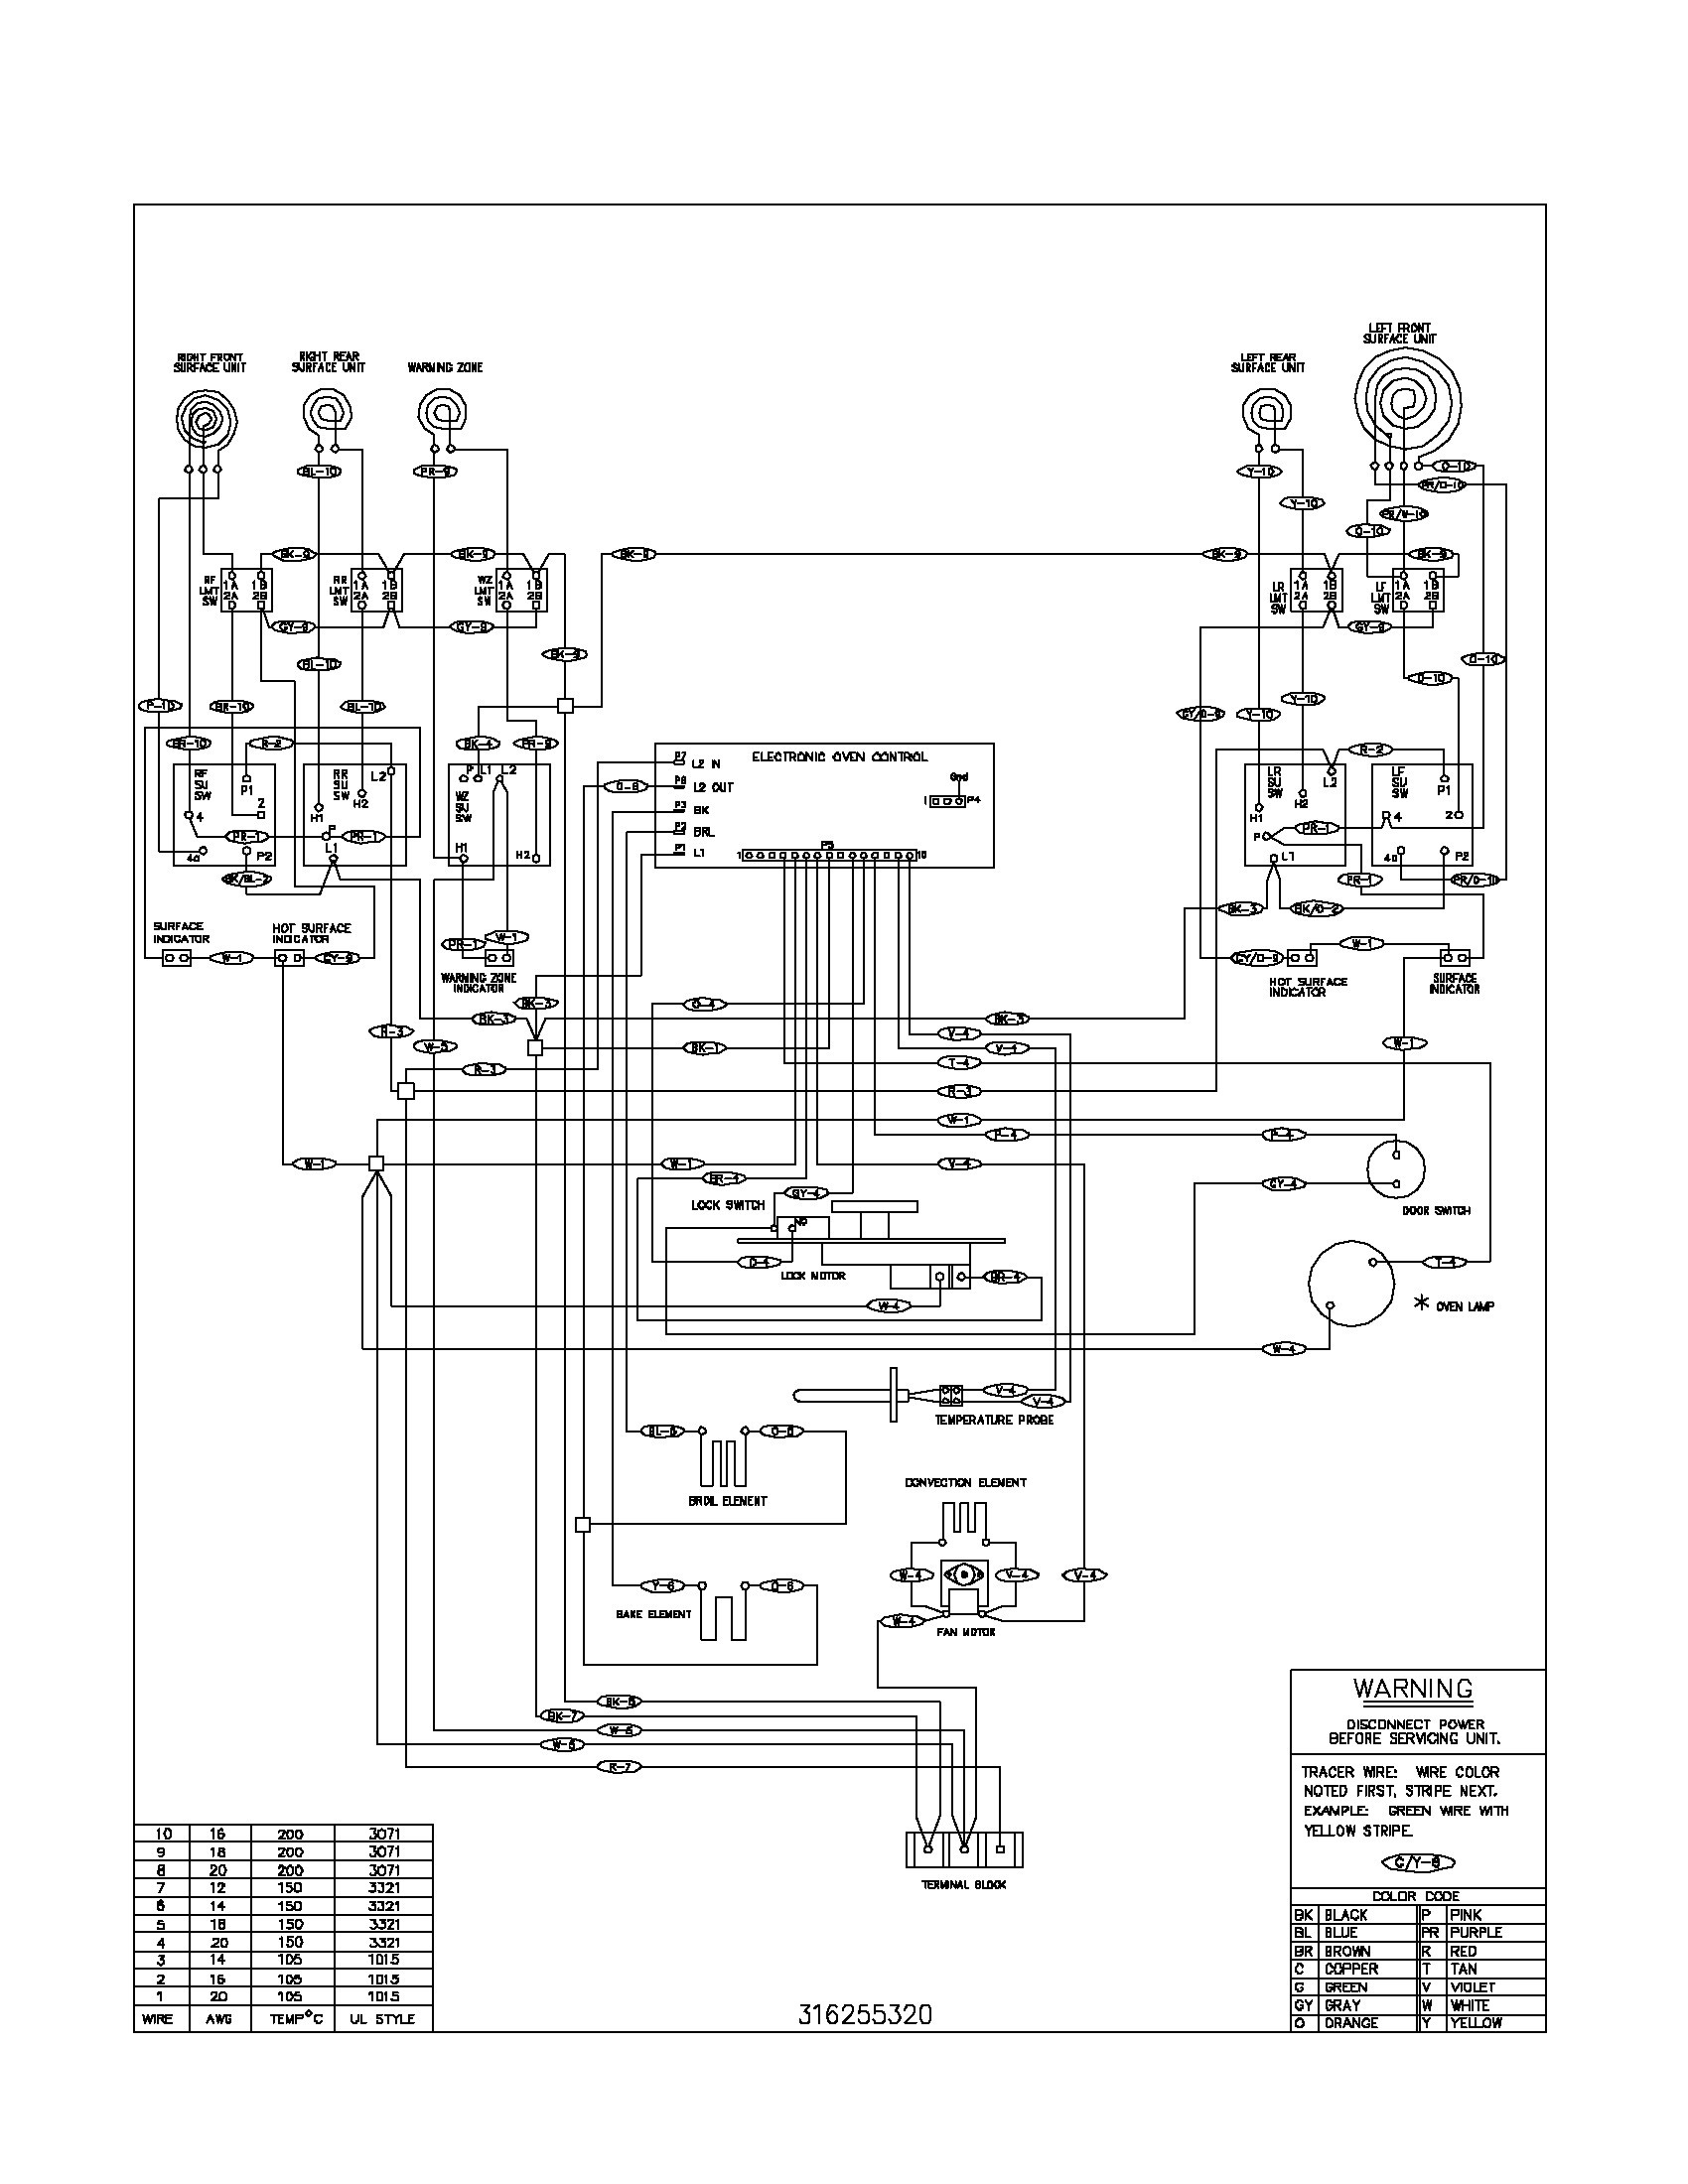 haier dryer wiring diagram auto electrical wiring diagram haier dryer wiring diagram